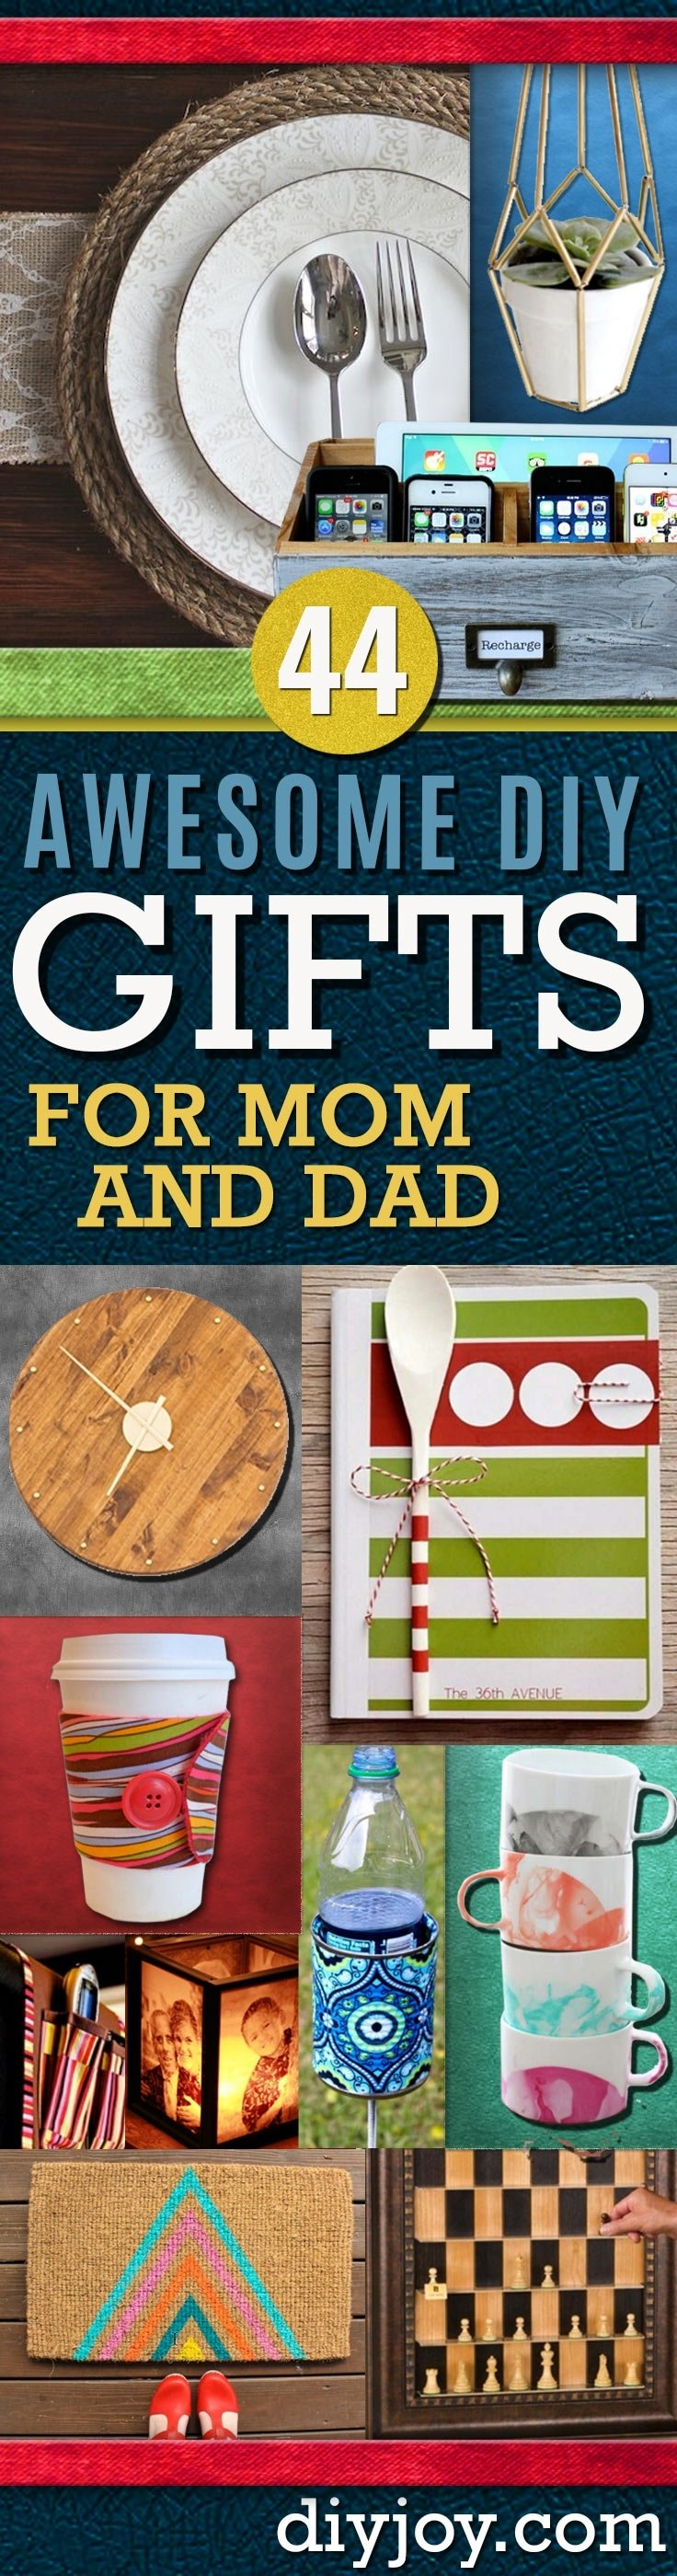 10 Lovable Christmas Gifts For Mom Ideas awesome diy gift ideas mom and dad will love 25 2020